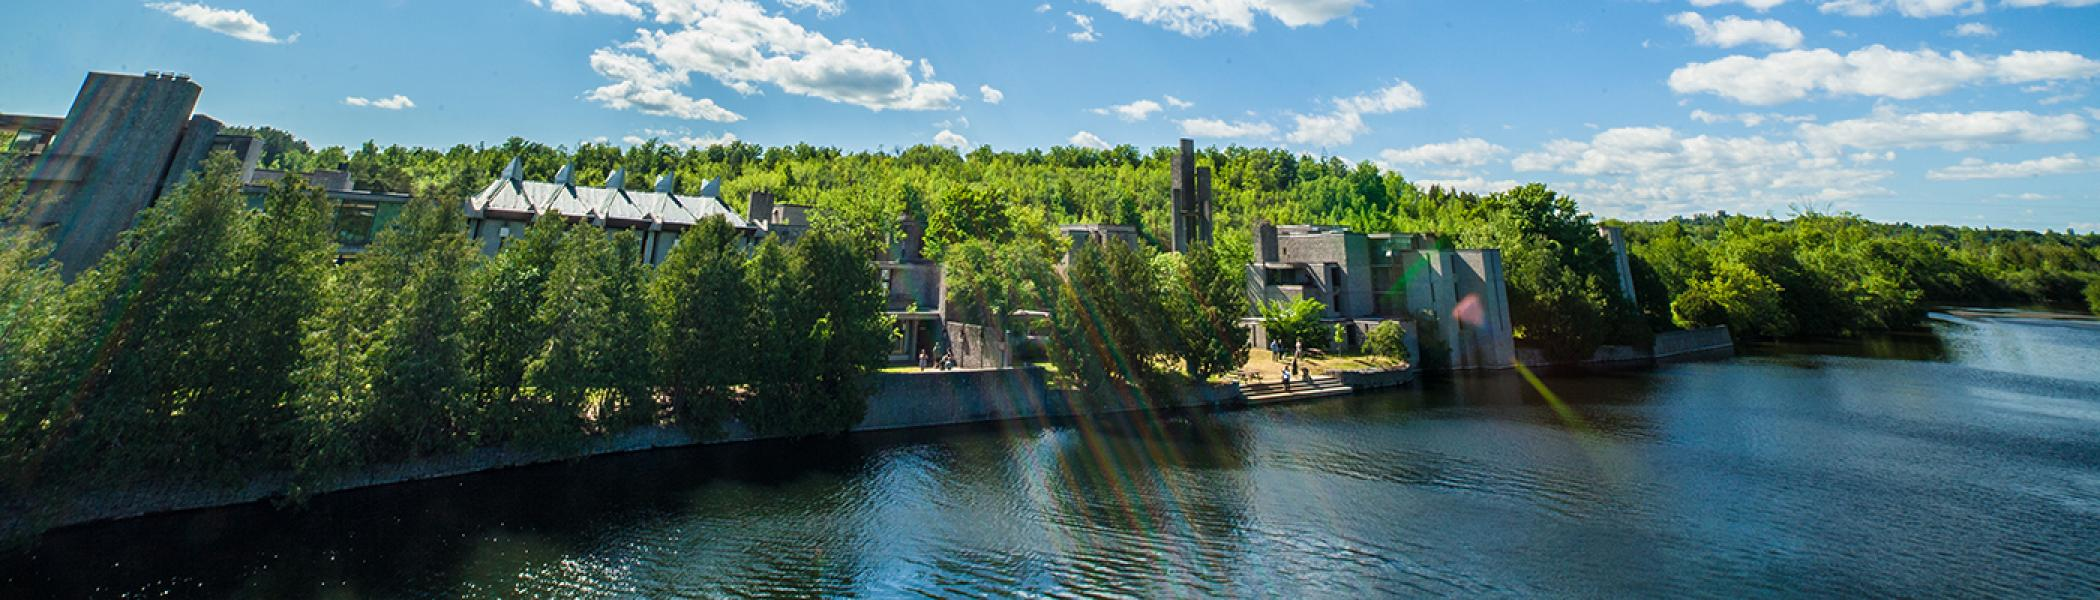 Exterior view of Champlain college in the summer sun from the east bank of the Otonabee river